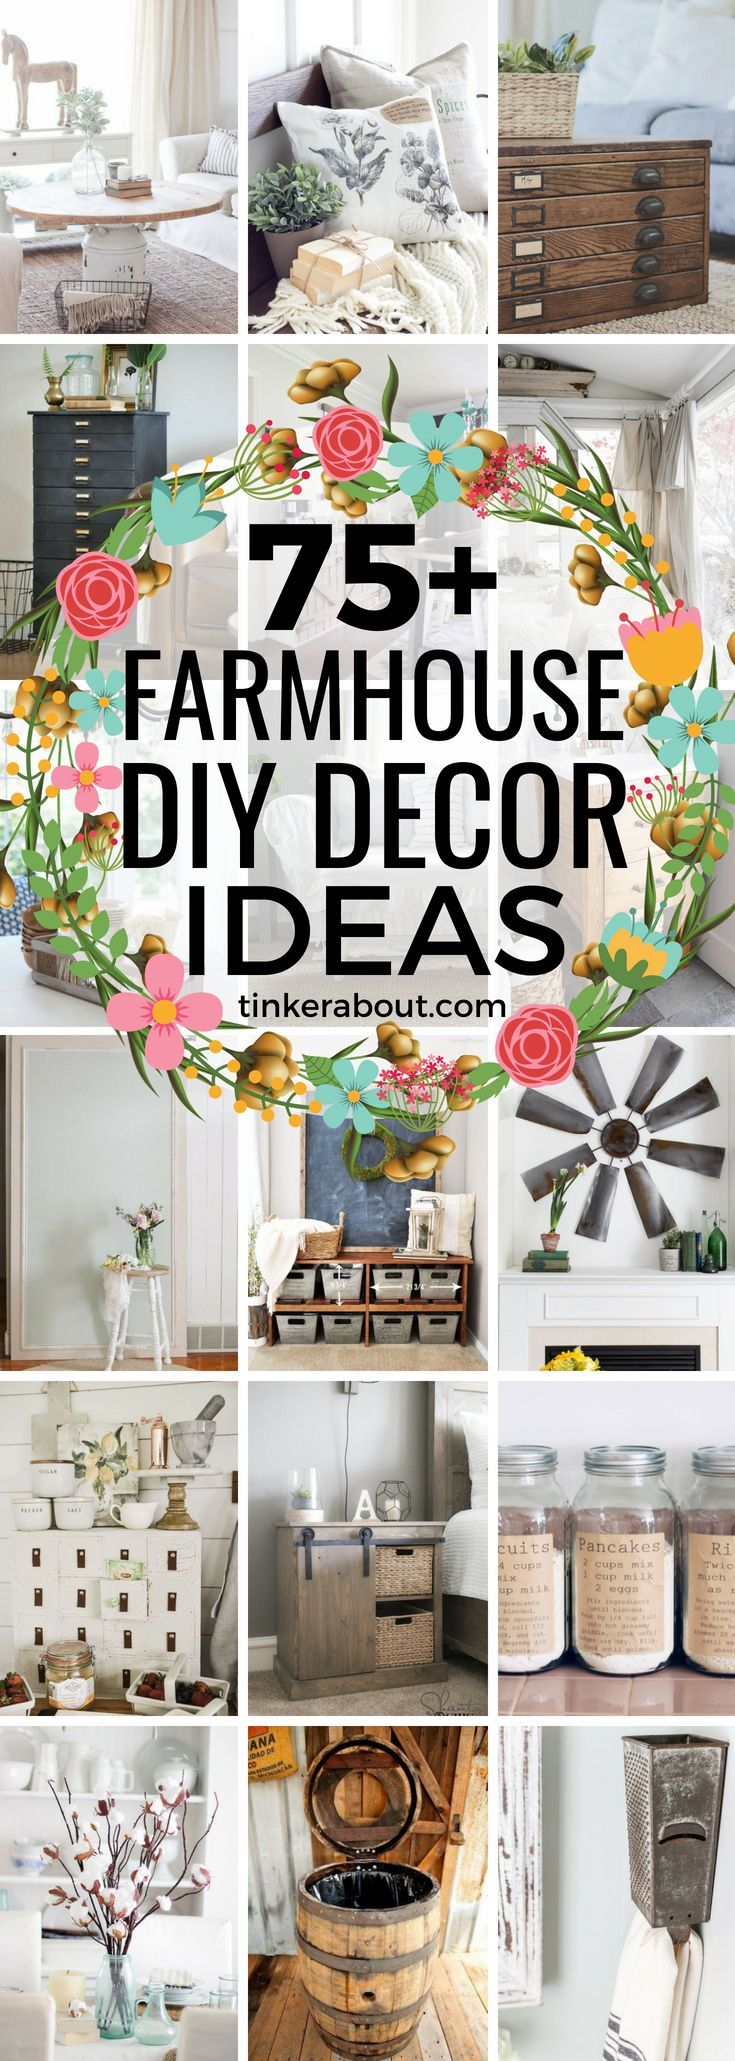 75+ DIY Farmhouse Decor Ideas For Every Room Of Your House -   24 farmhouse style on a budget